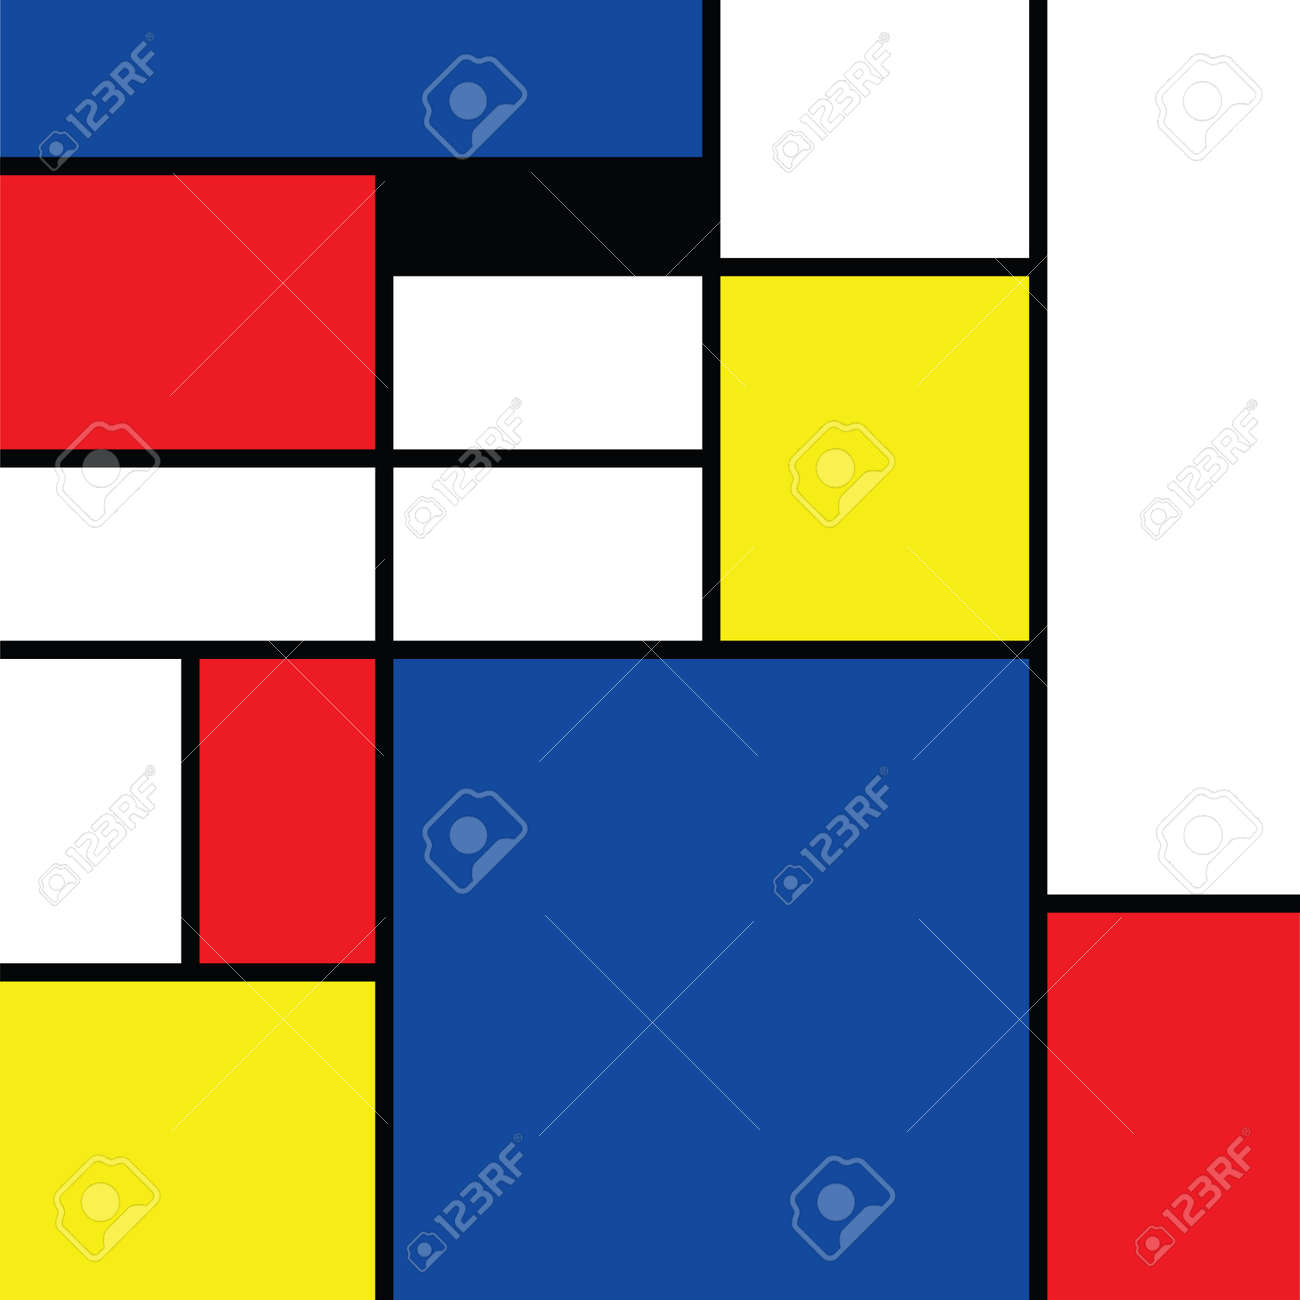 Checkered style emulation. The Netherlands art history and Holland painter. Dutch mosaic or checker line pattern. Retro pop art pattern - 156621202